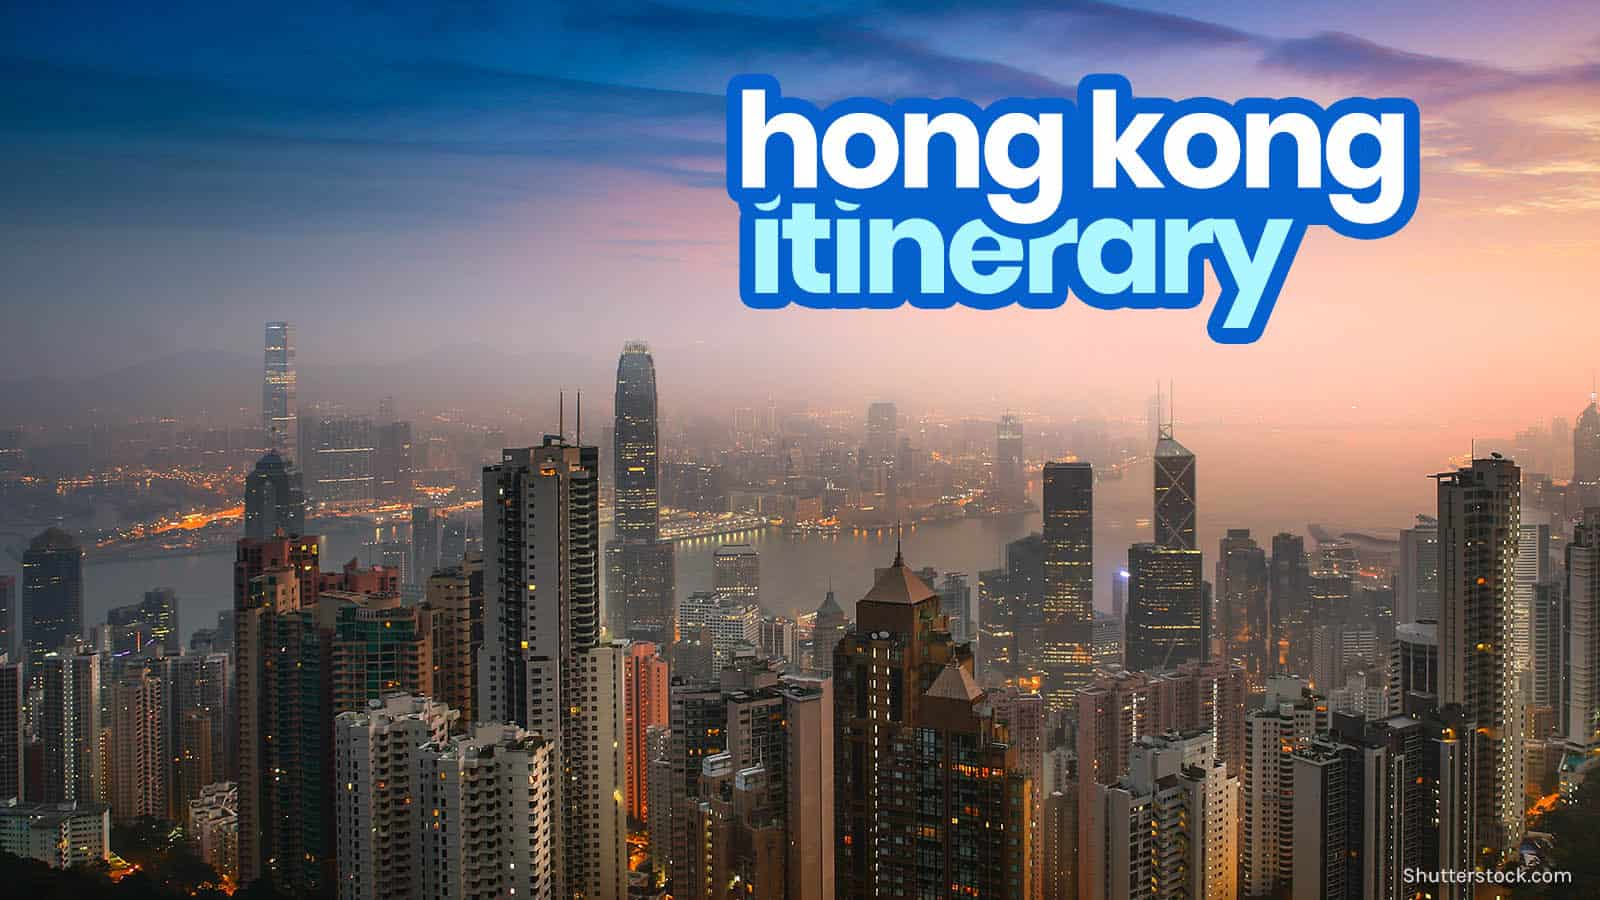 HONG KONG ITINERARY: 12 Best Things to Do & Places to Visit   The Poor Traveler Itinerary Blog